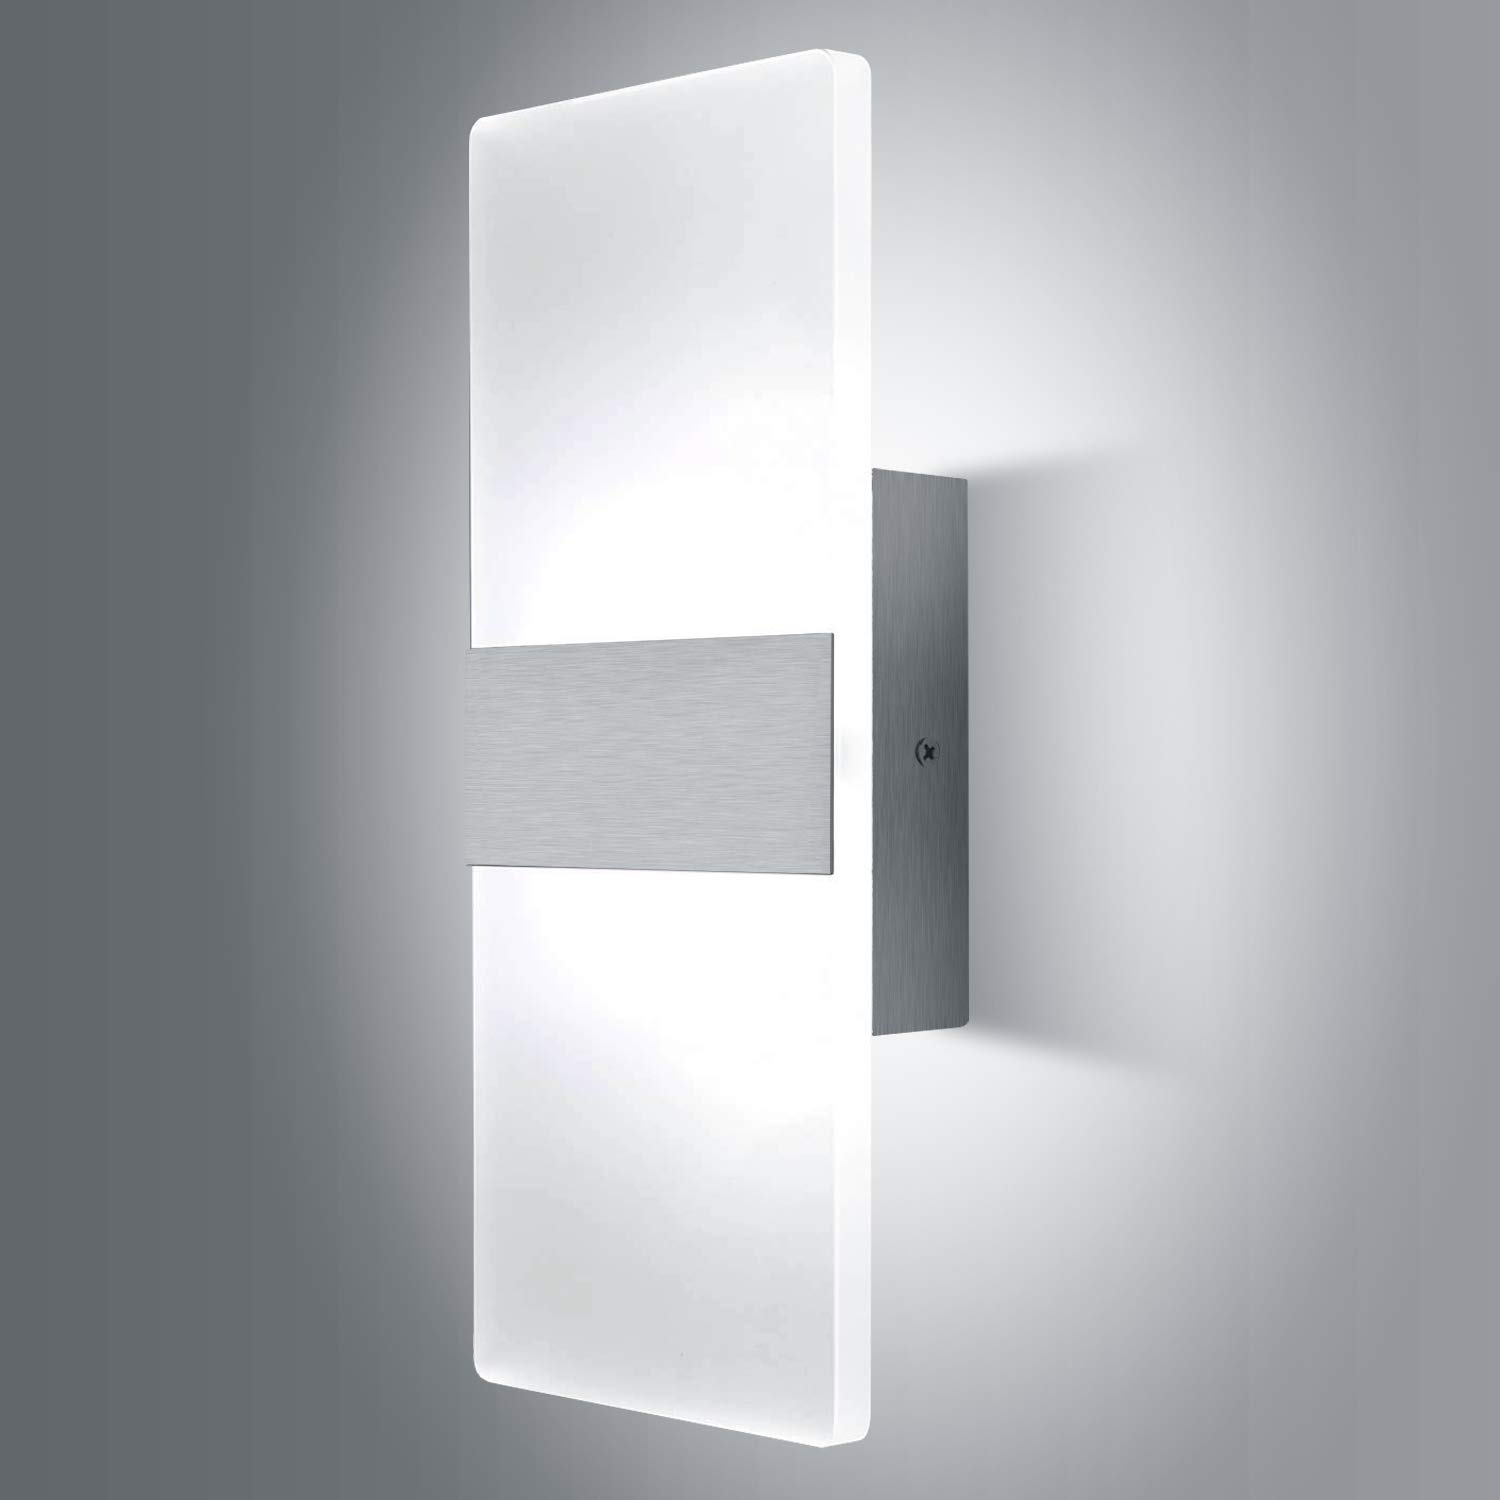 Lightess Modern Wall Sconce 12W Up Down Wall Lights Acrylic LED Wall Lamp for Hallway Bedroom Corridor, Cool White